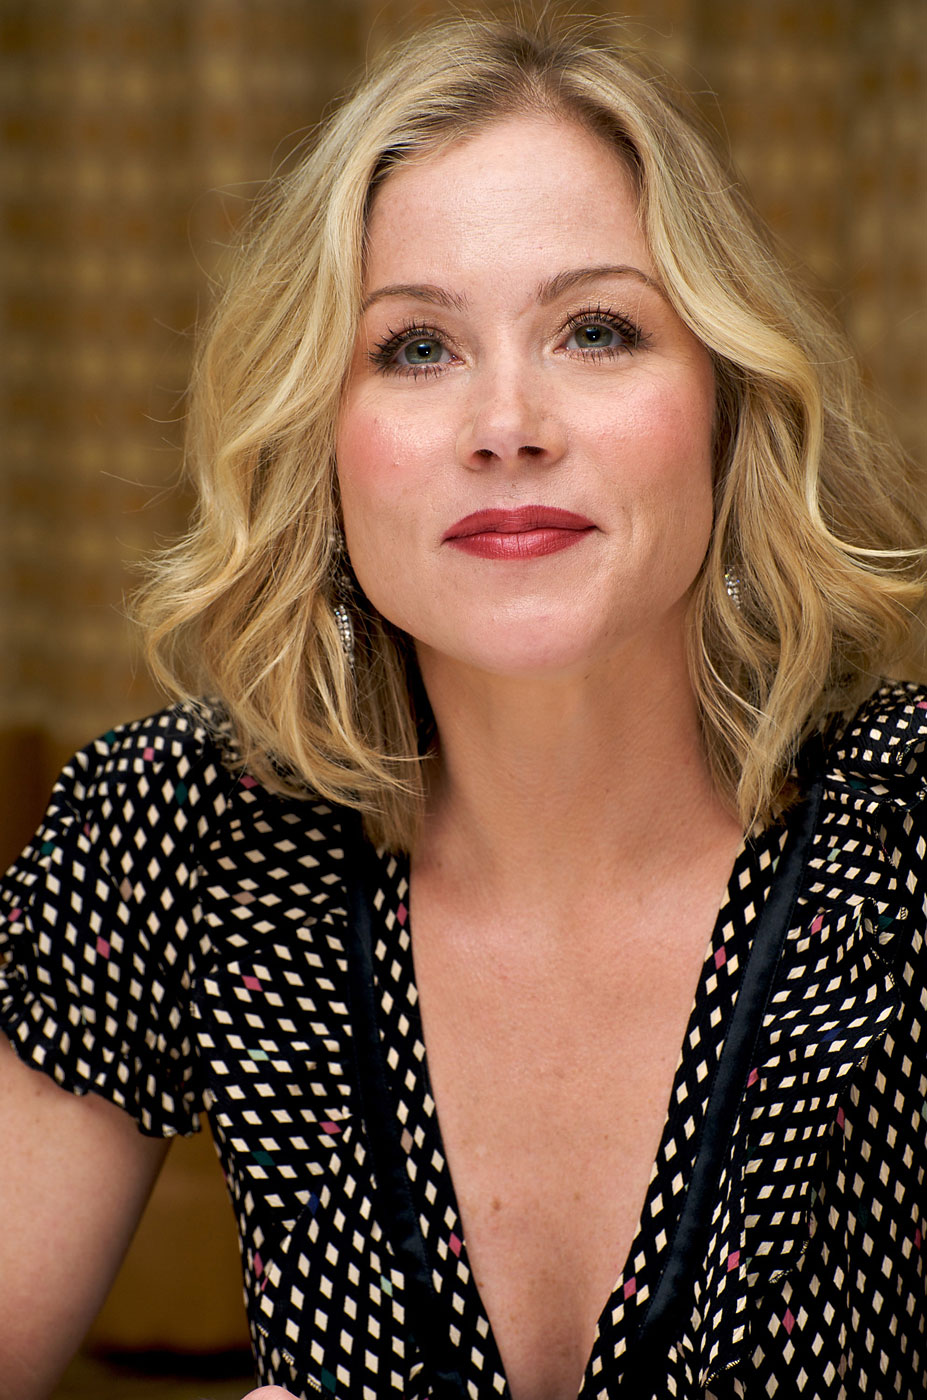 Christina Applegate                               Actress and healthcare activist                               Diagnosed with breast cancer in 2008